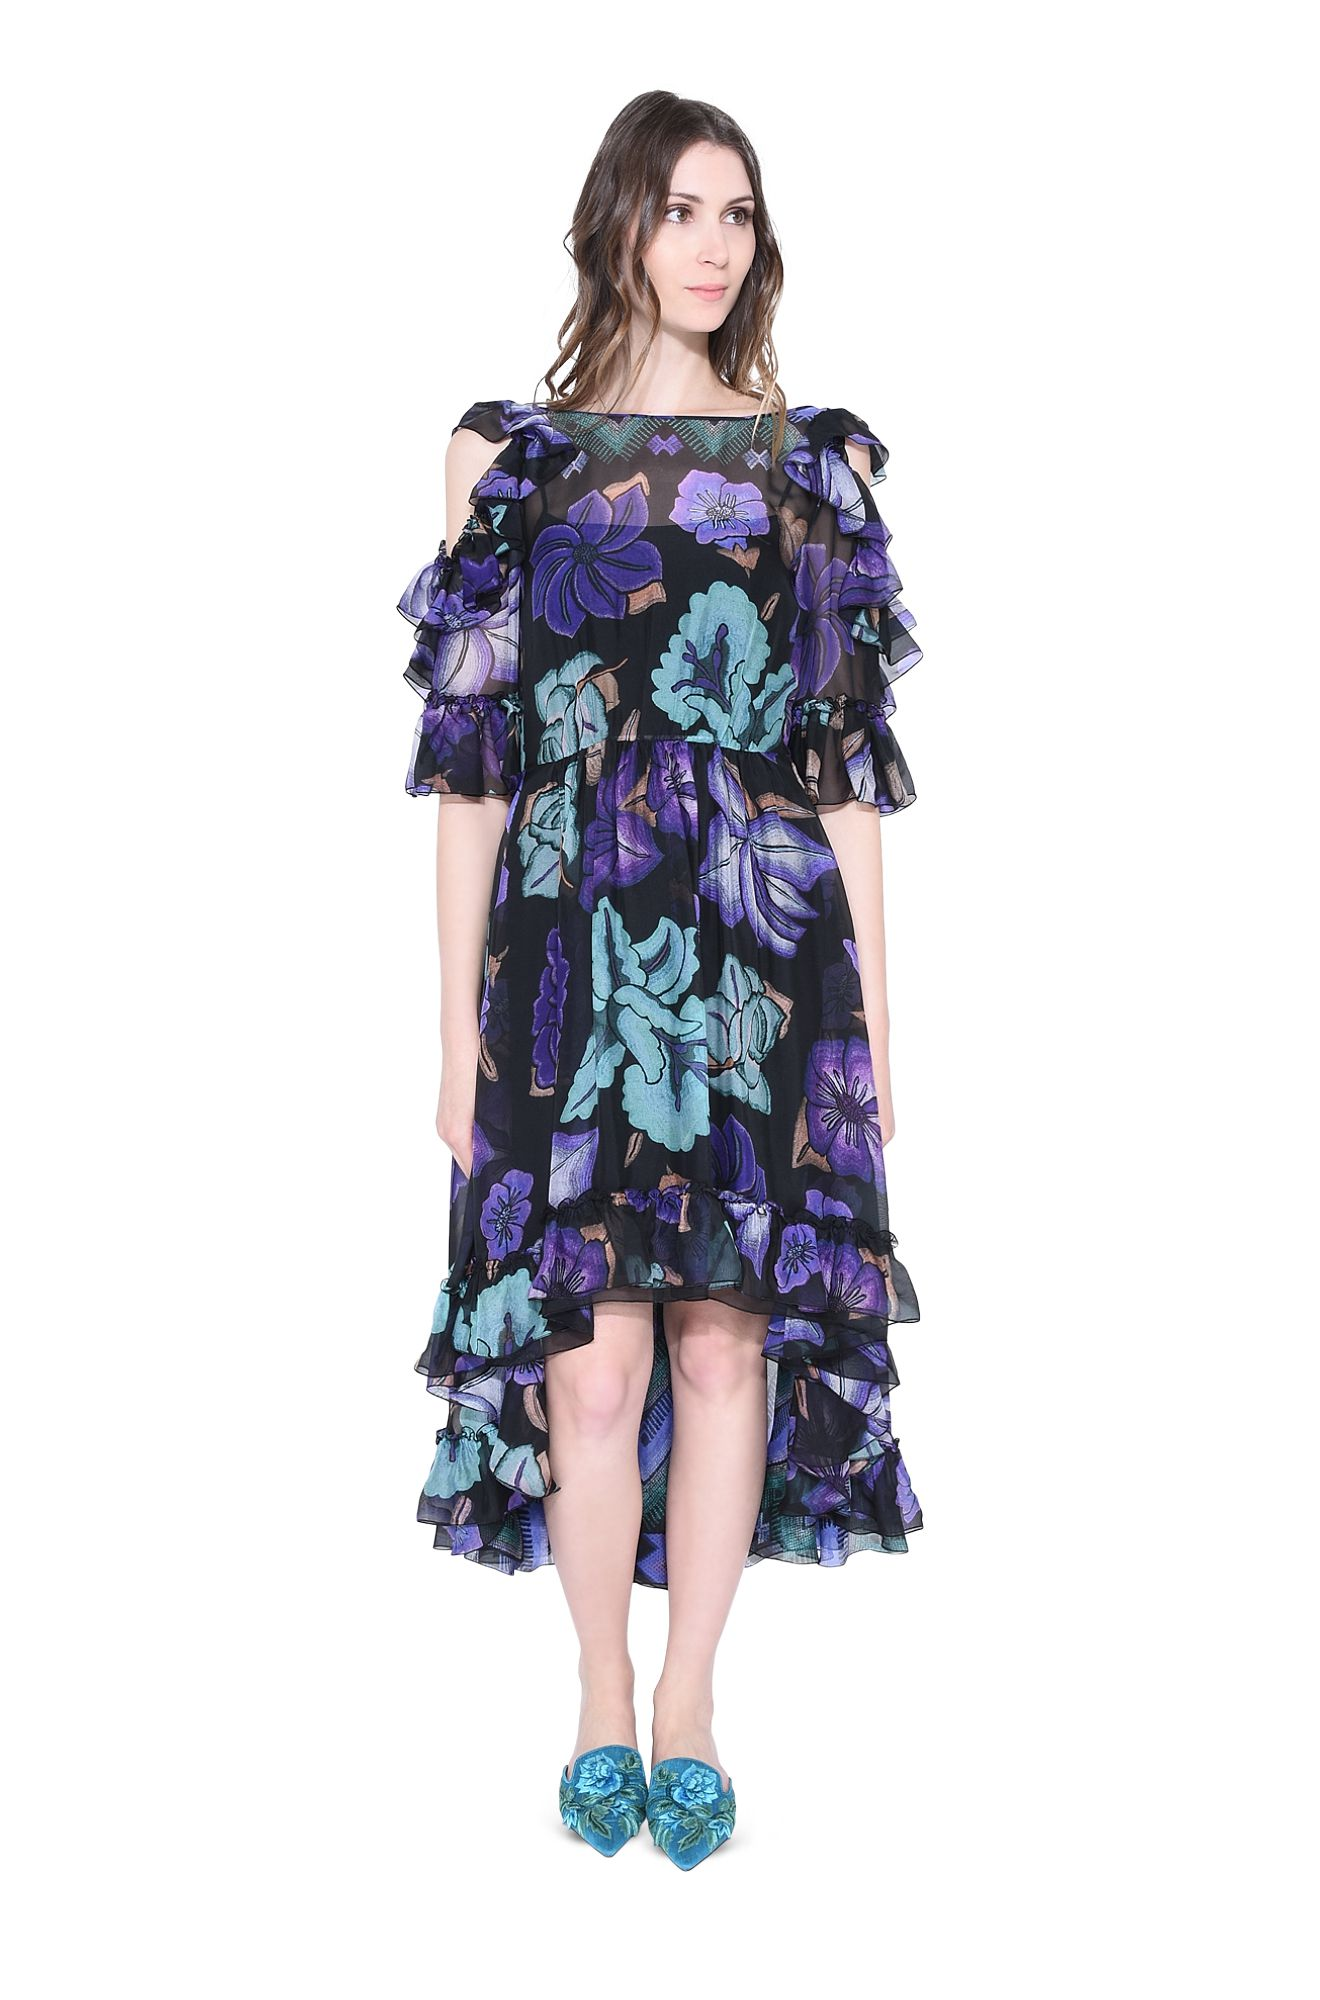 BLOOMING ASYMMETRIC DRESS